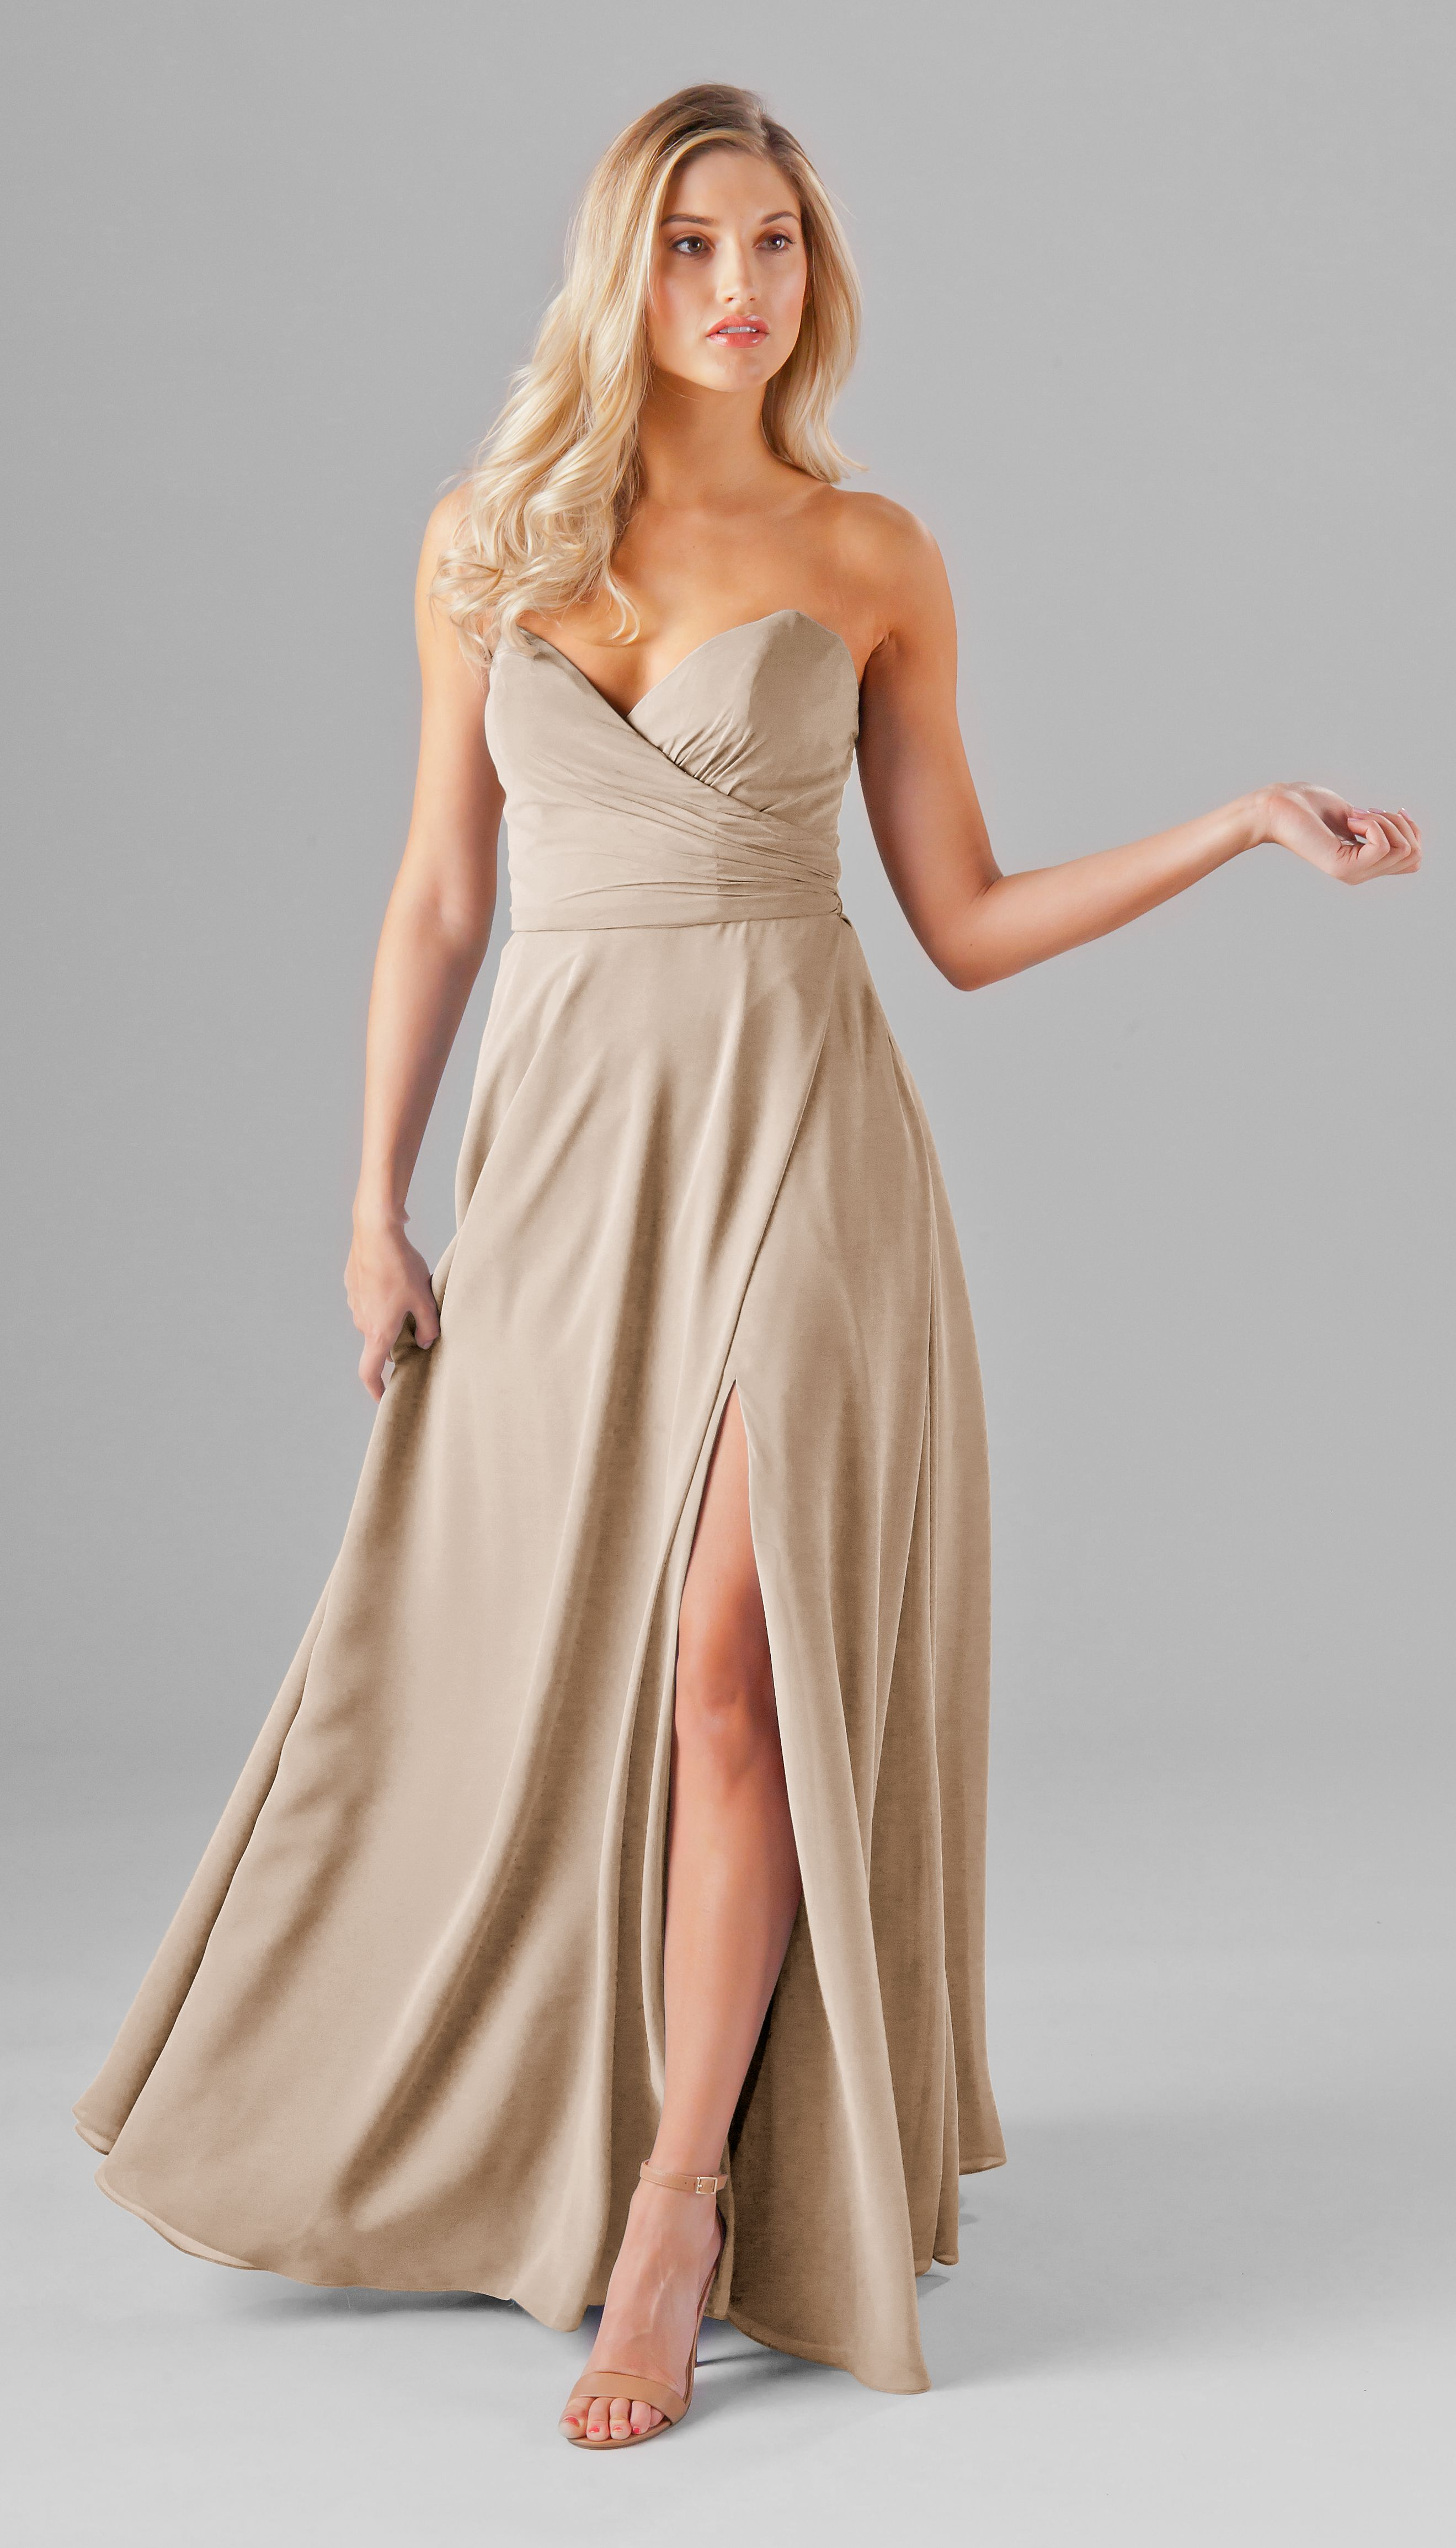 Poppy latte bridesmaid dresses tan wedding and chiffon a strapless chiffon bridesmaid dress with pockets and a slit kennedy blue poppy strapless ombrellifo Image collections